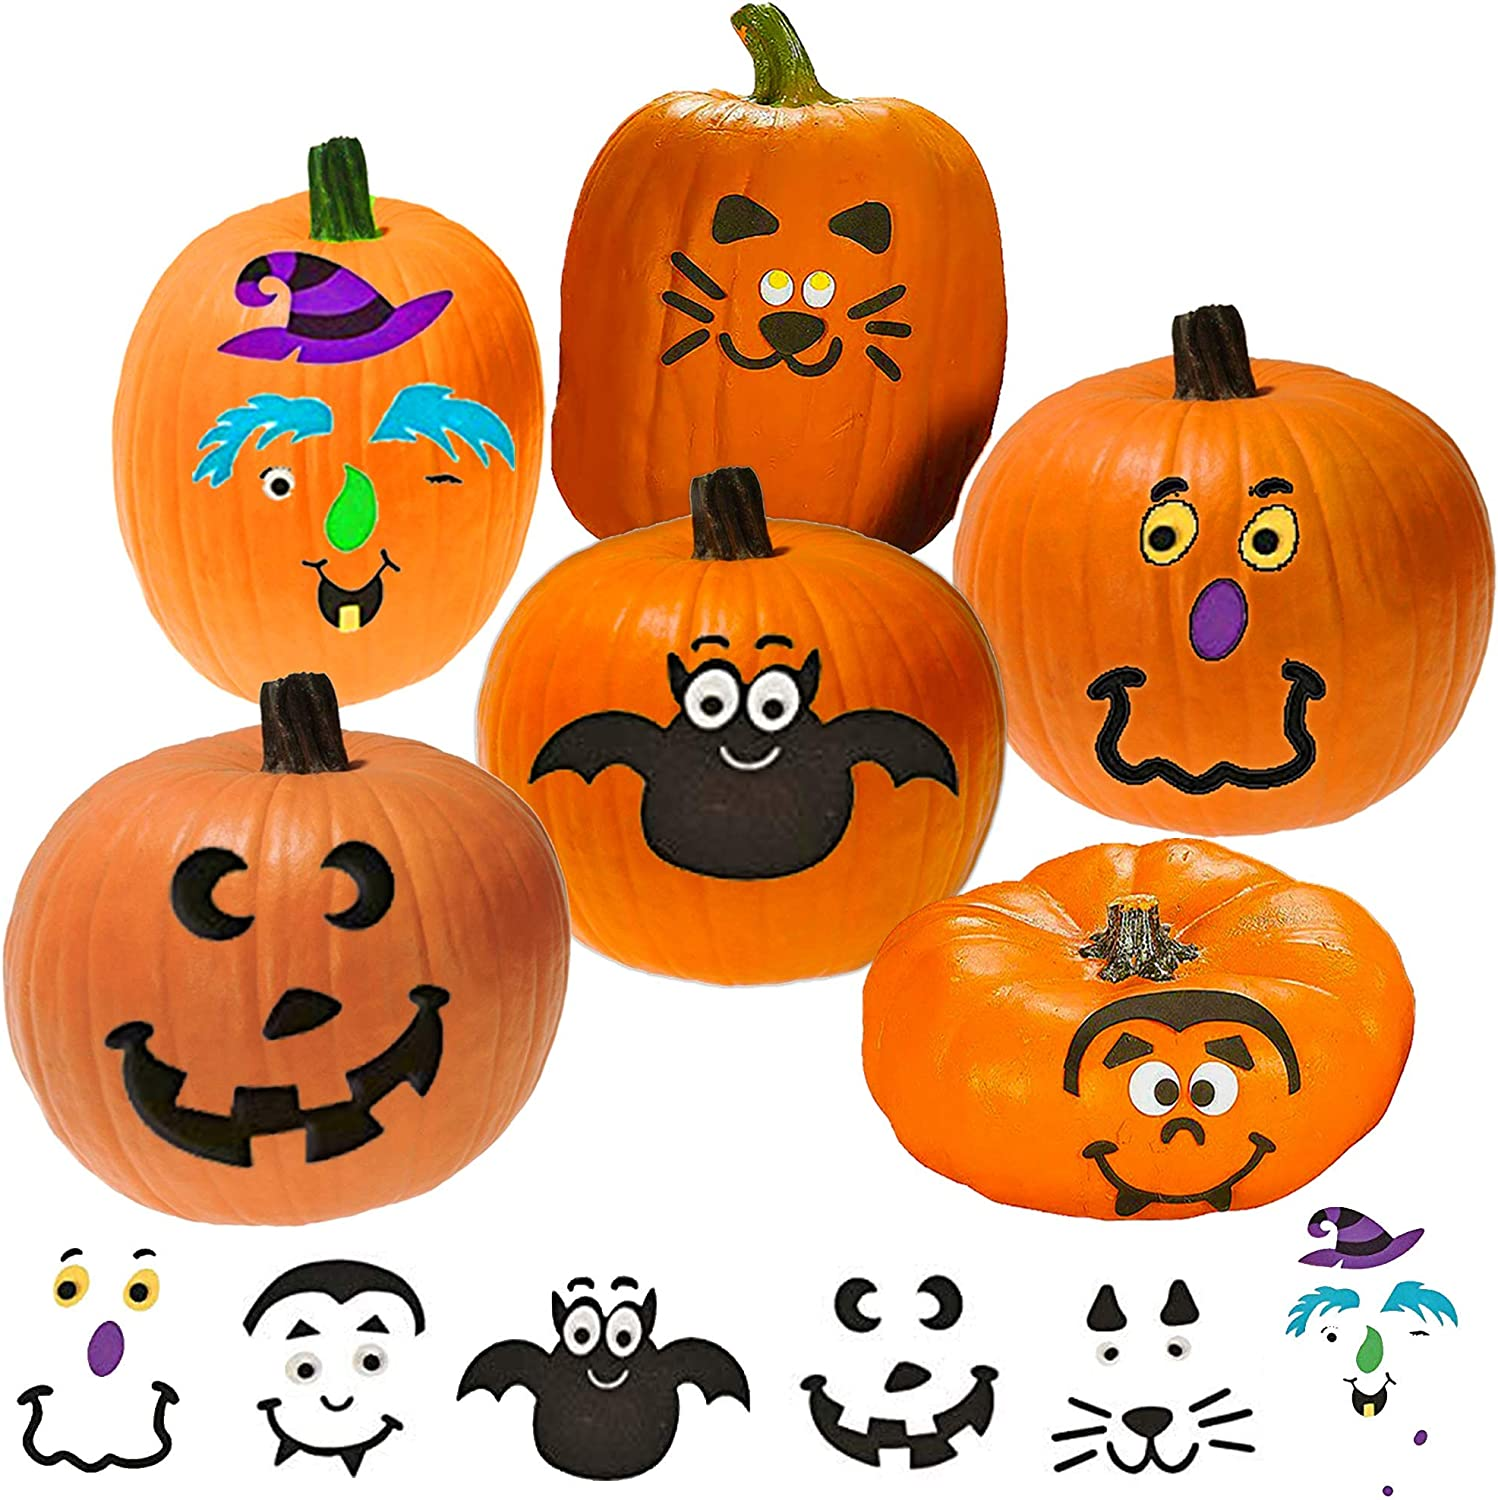 Halloween Pumpkin Decorating Stickers Kit 24 Pumpkin Face Foam Stickers Self Adhesive Mini Stickers For Small Pumpkins Decorates 24 Pumpkins Character Faces For Jack O Lantern Decoration Kit For Kids By 4e S Novelty Kitchen